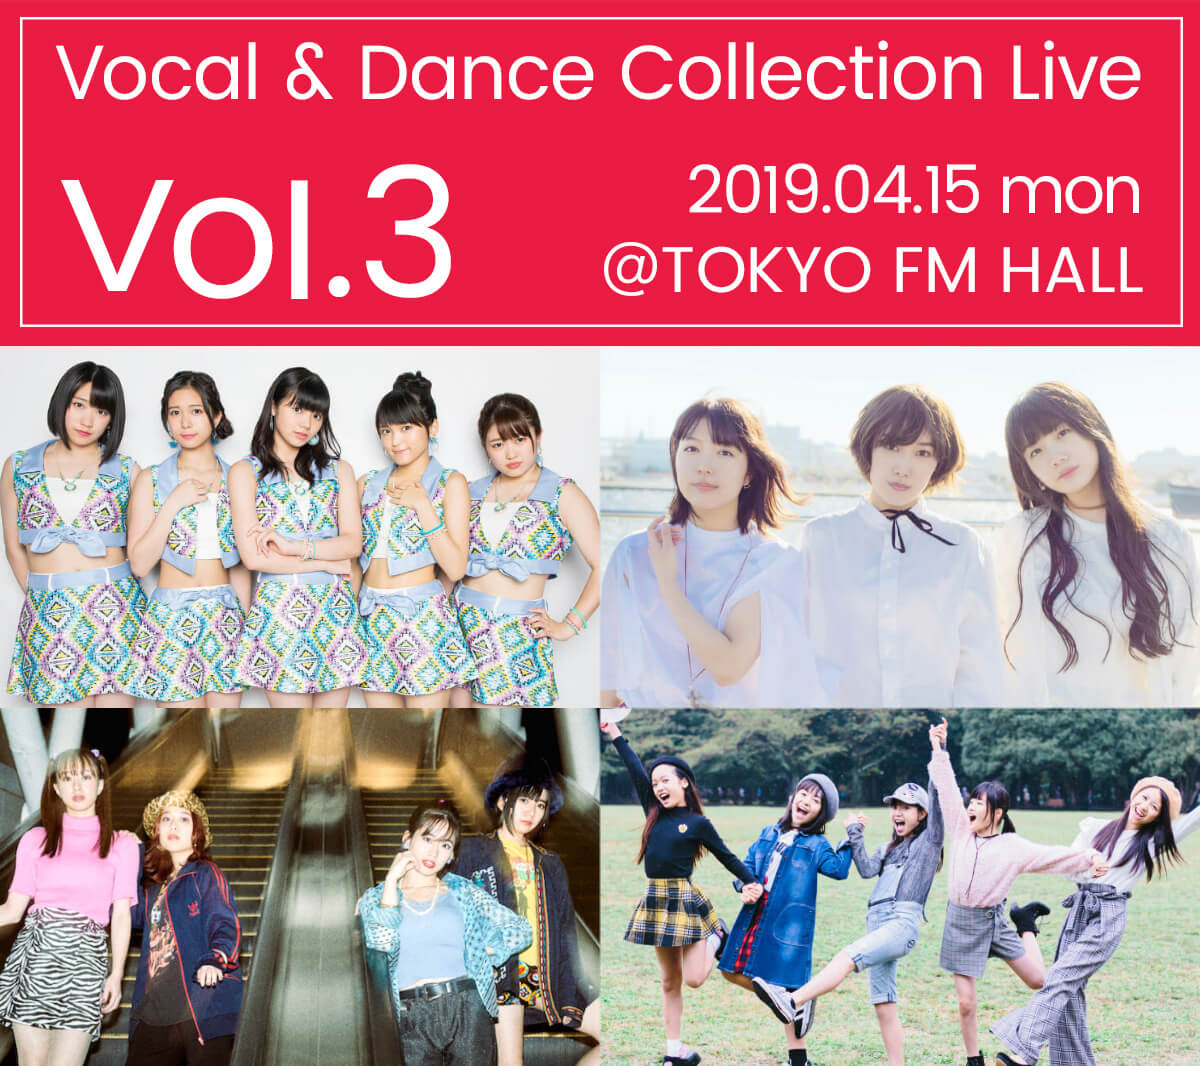 Vocal & Dance Collection Live Vol.3